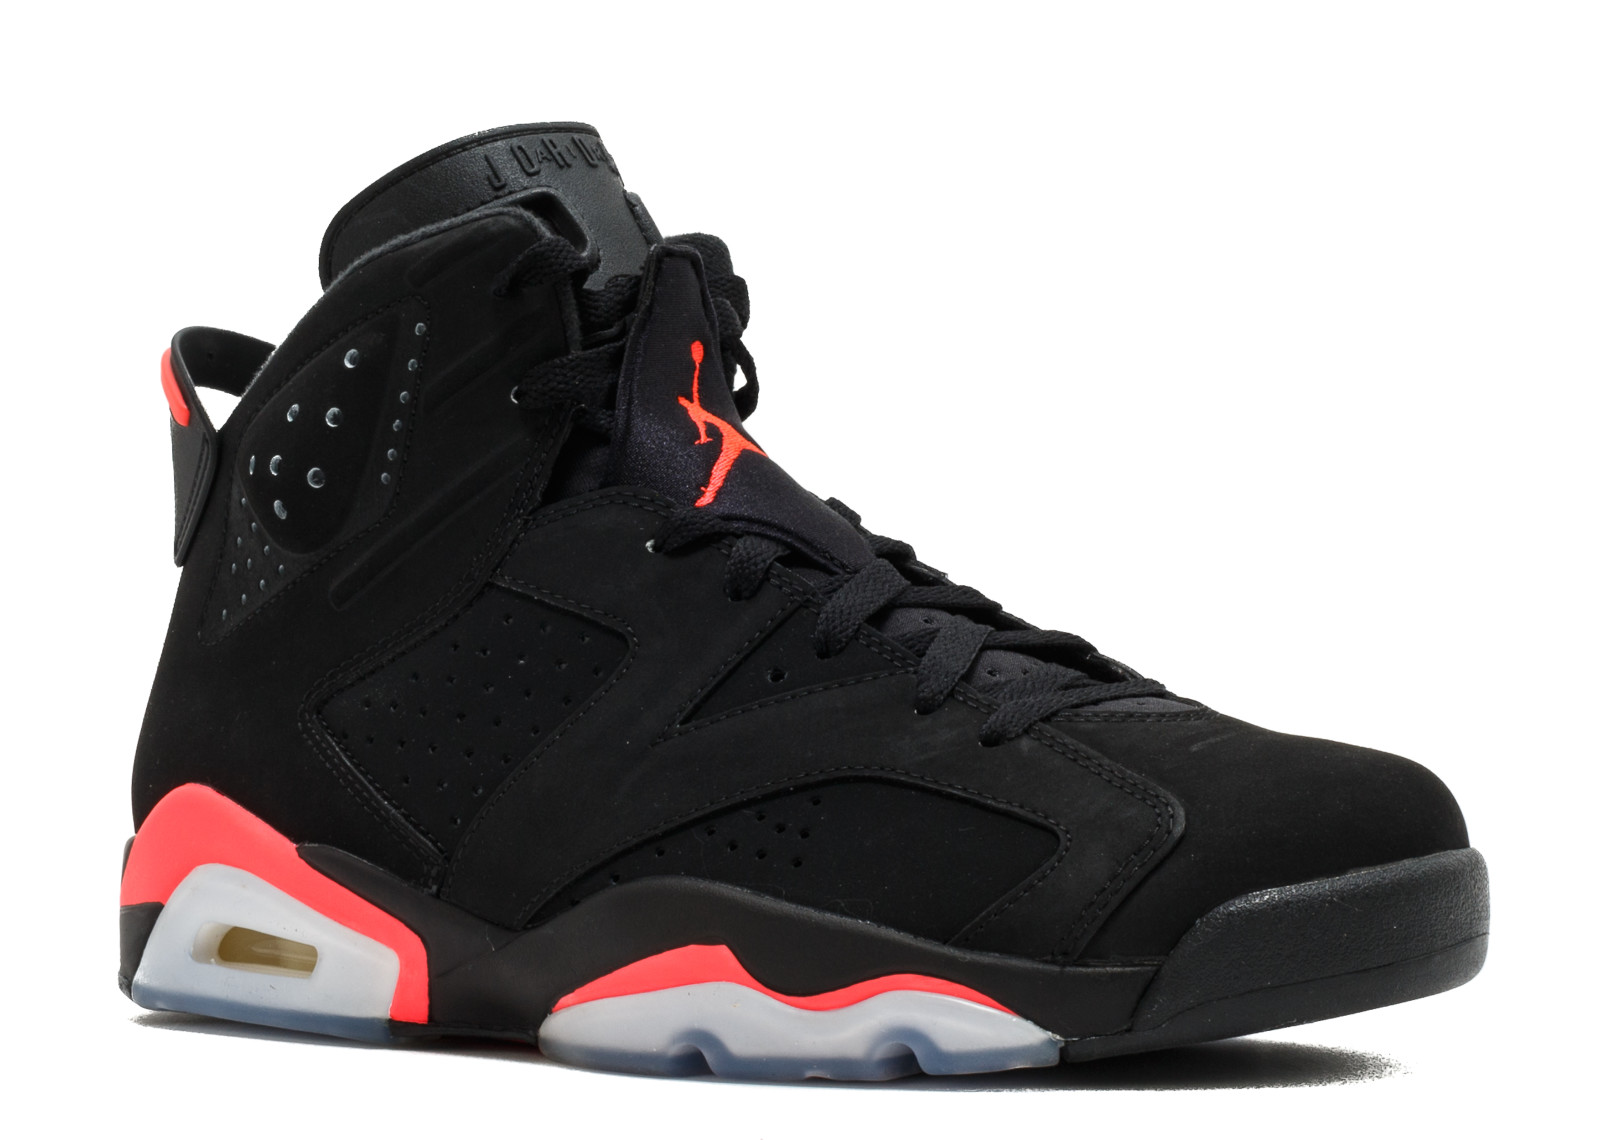 low priced ce524 4b7ff Air Jordan - Men - Air Jordan 6 Retro  Infrared 2014  - 384664-023 - Size  8.5